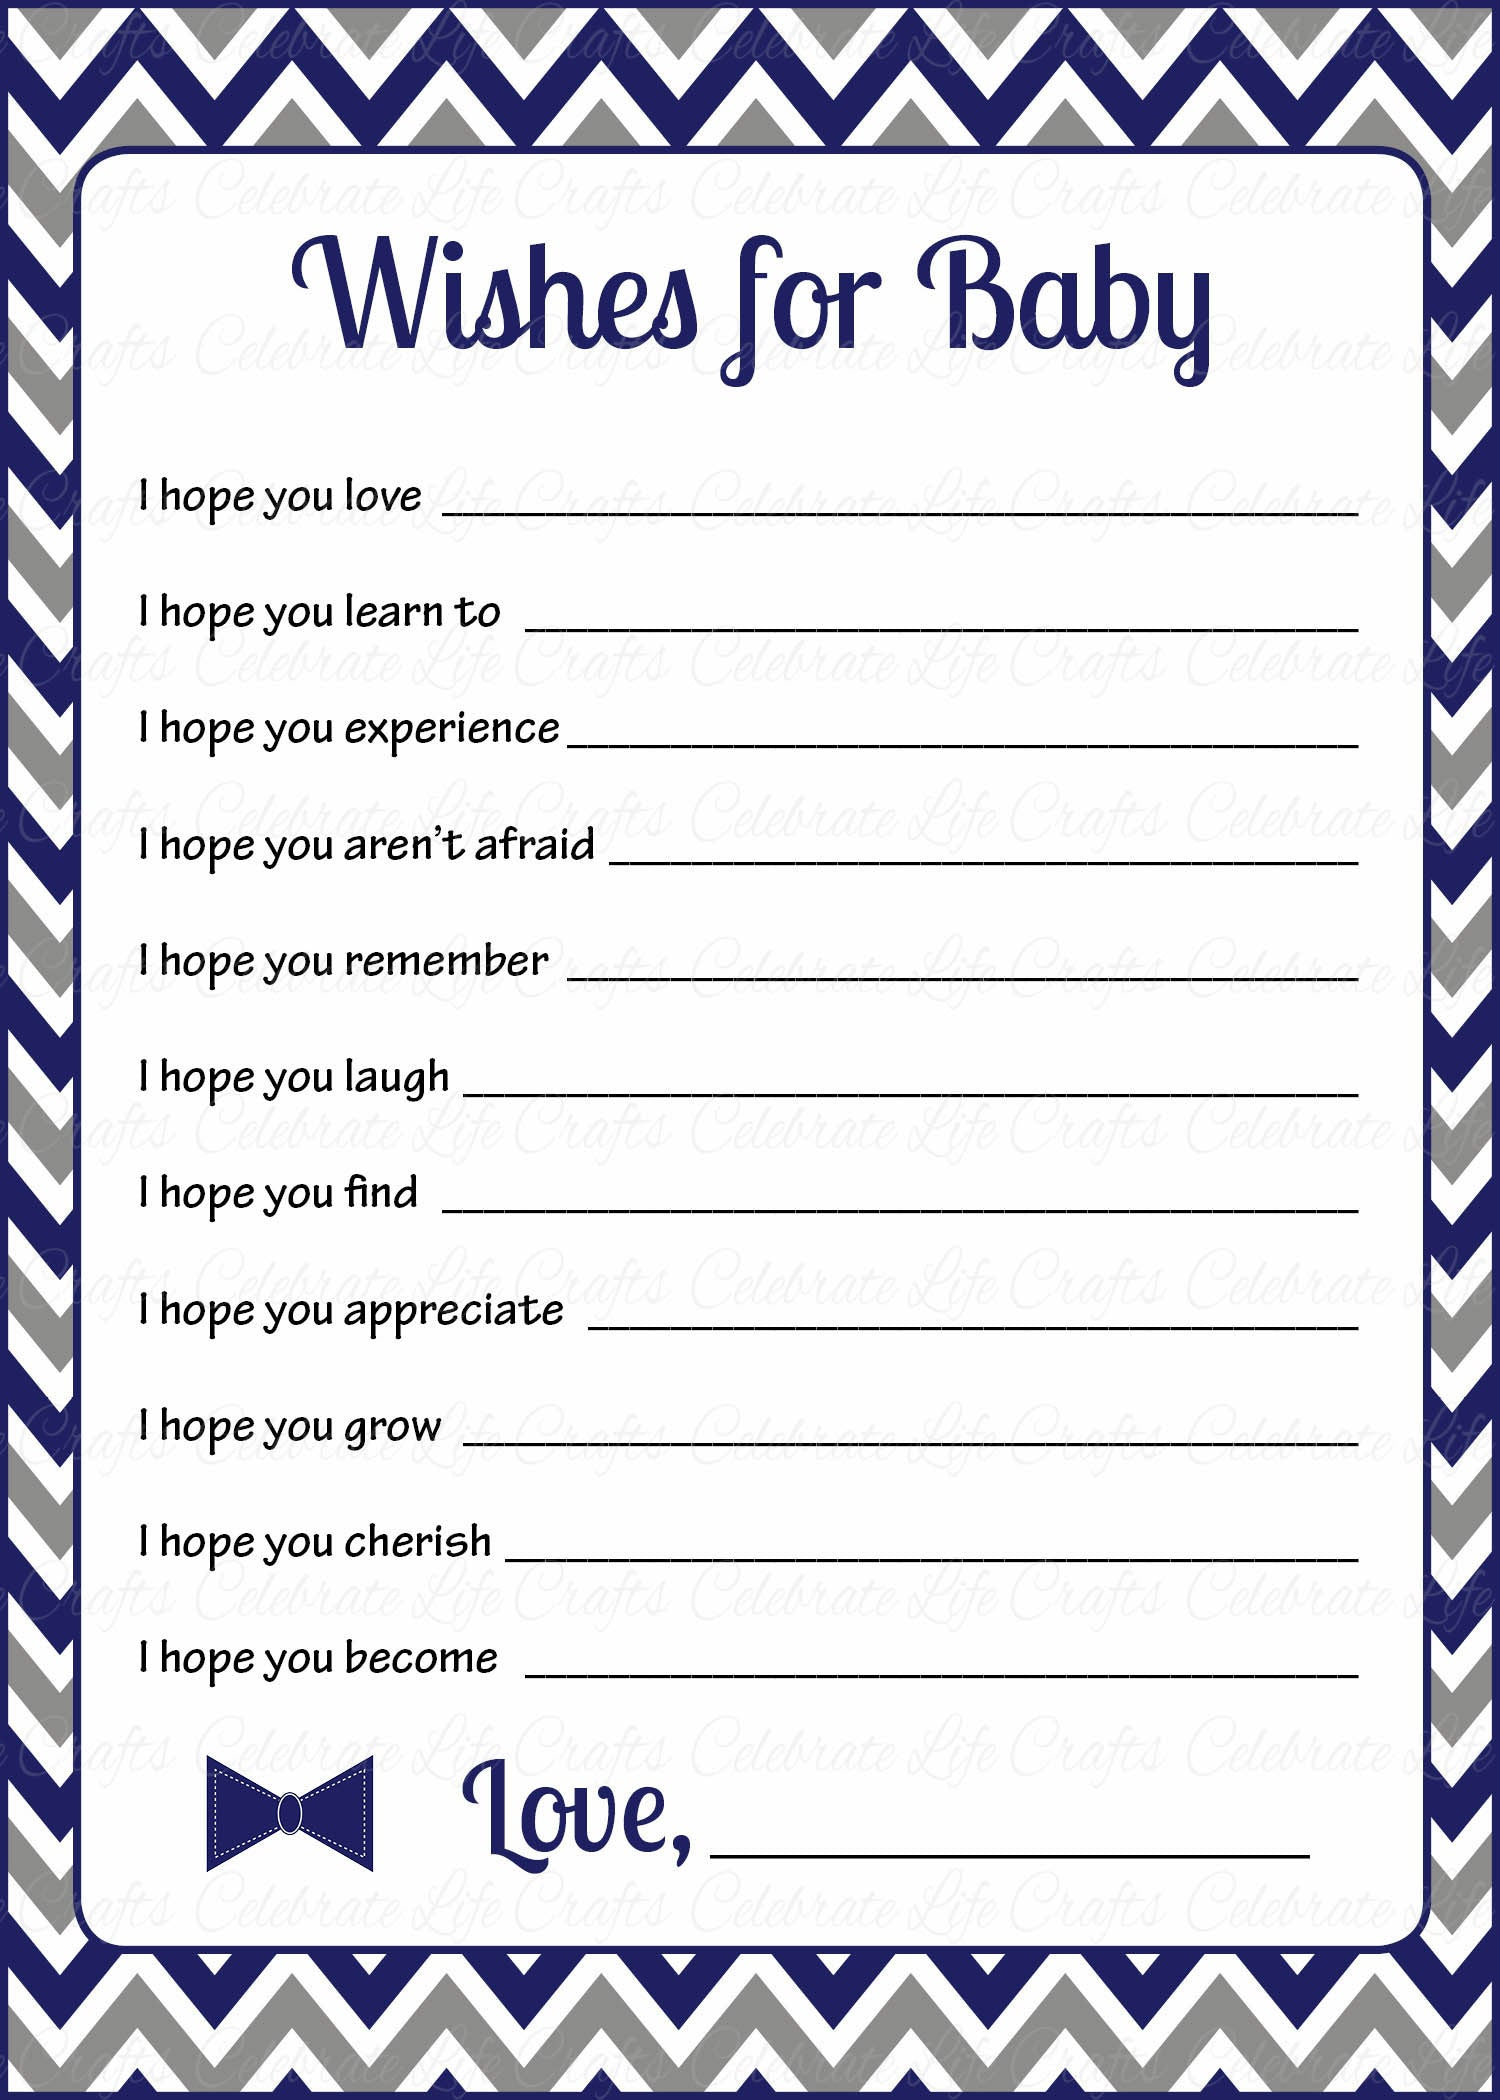 Wishes for baby shower activity little man baby shower theme for wishes for baby cards printable download navy gray little man baby shower activity b1006 kristyandbryce Image collections